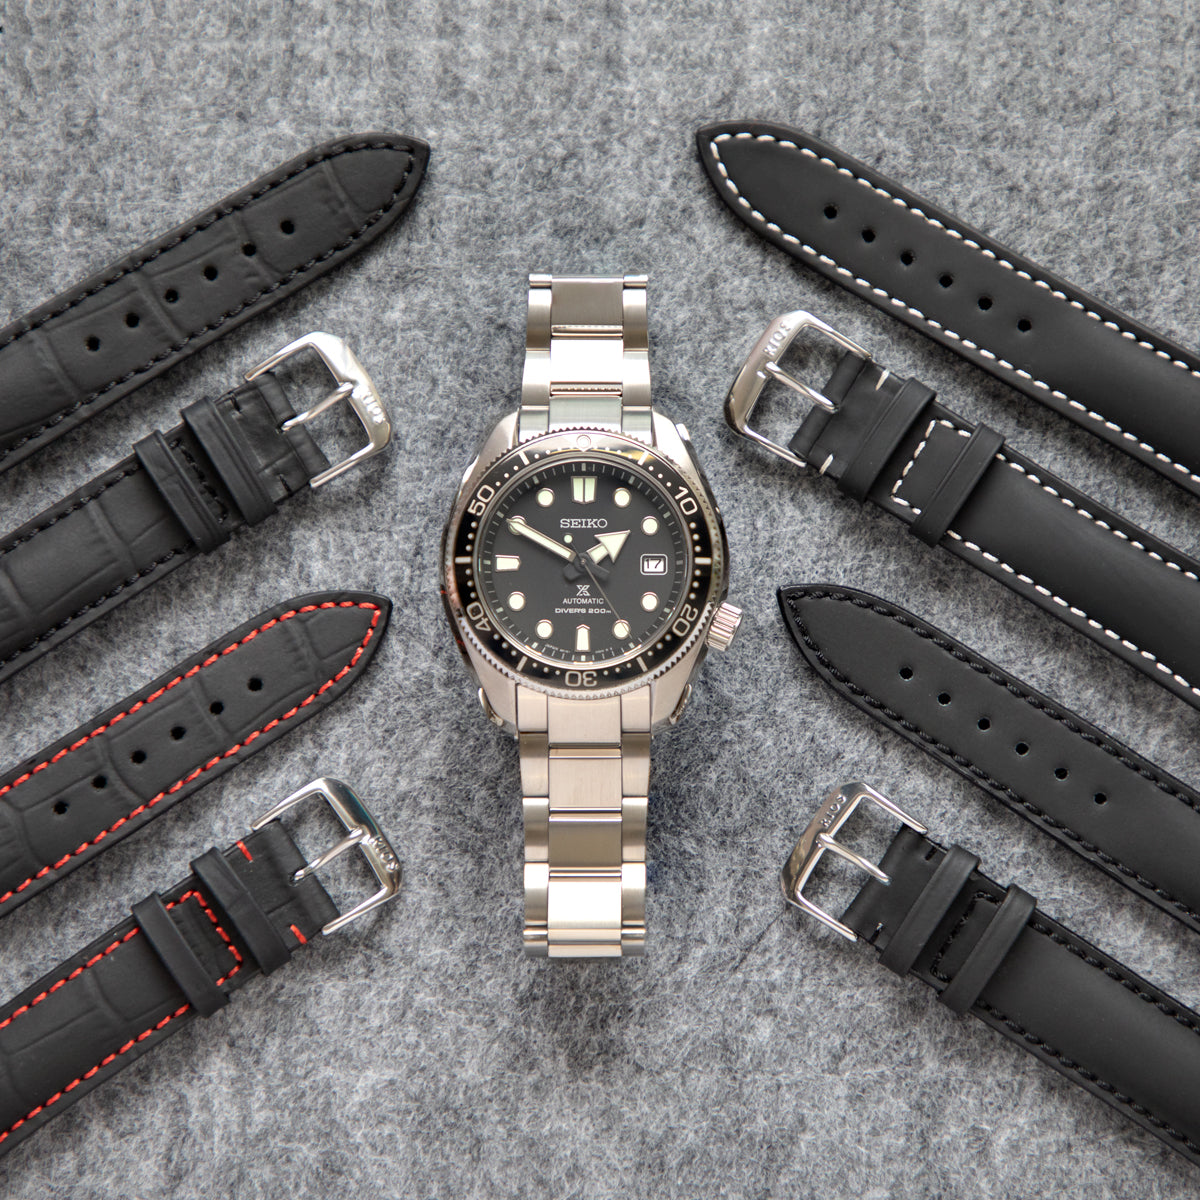 Four water resistant watch straps by Rios1931